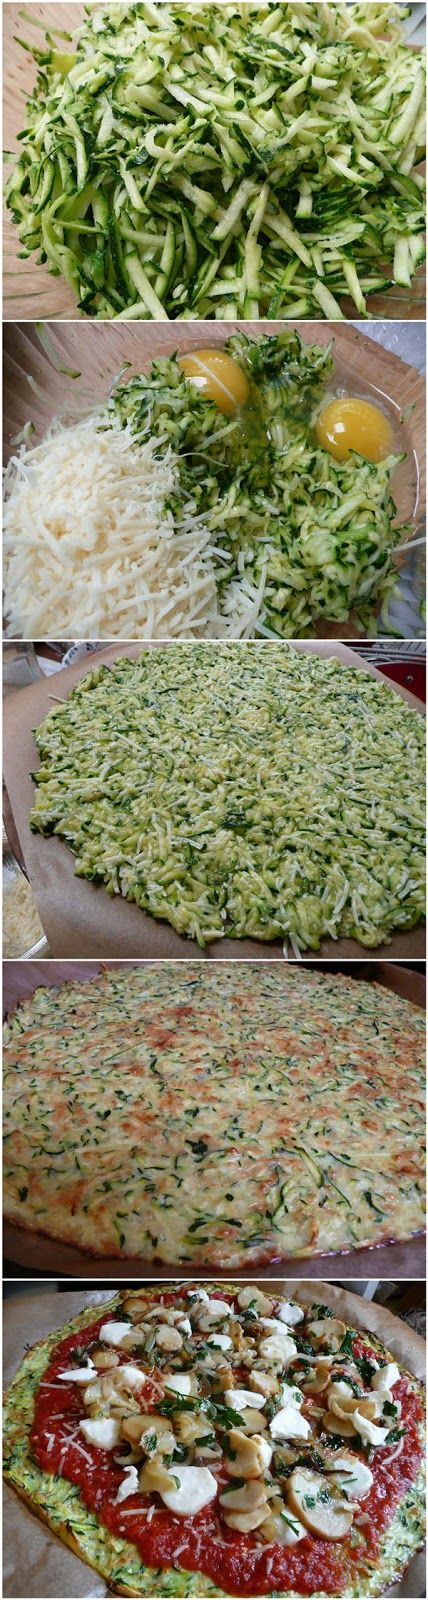 Zucchini Crust Pizza #healthy This looks so delicious!